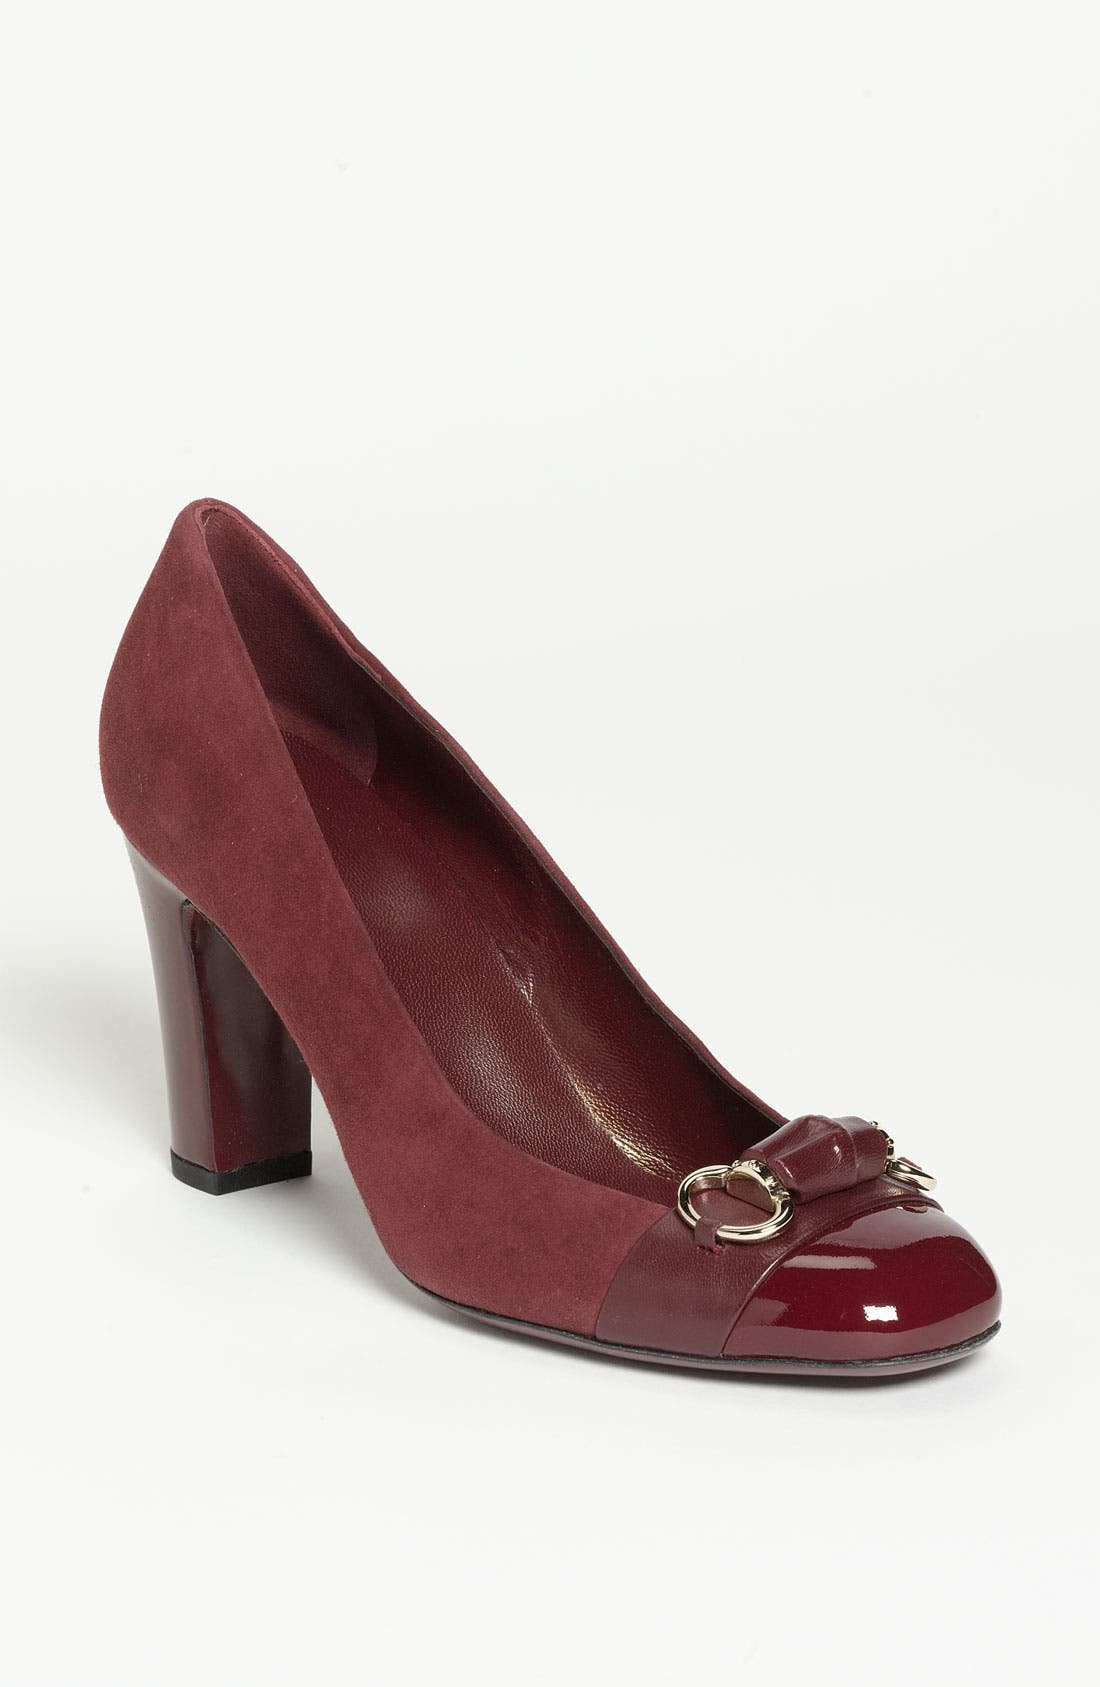 Alternate Image 1 Selected - Gucci 'Bamboo Bit' Pump